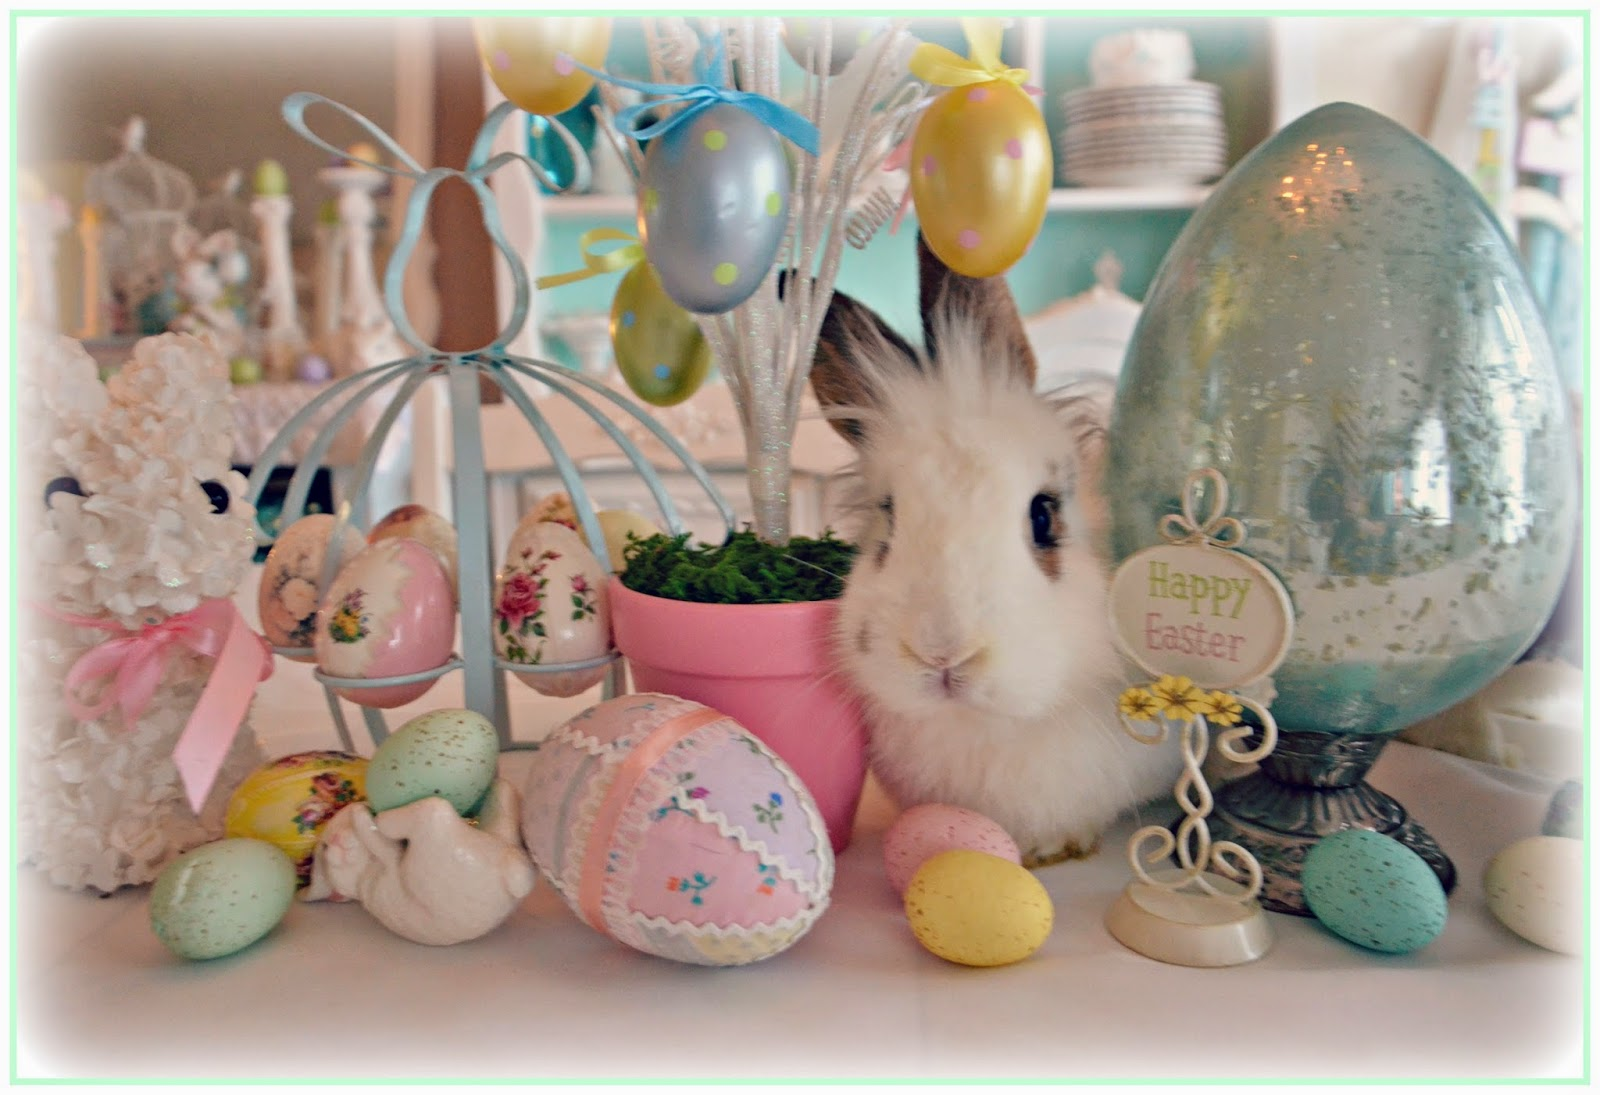 Easter Decor Meet Frankie A New Friend For Little Bunny Fufu